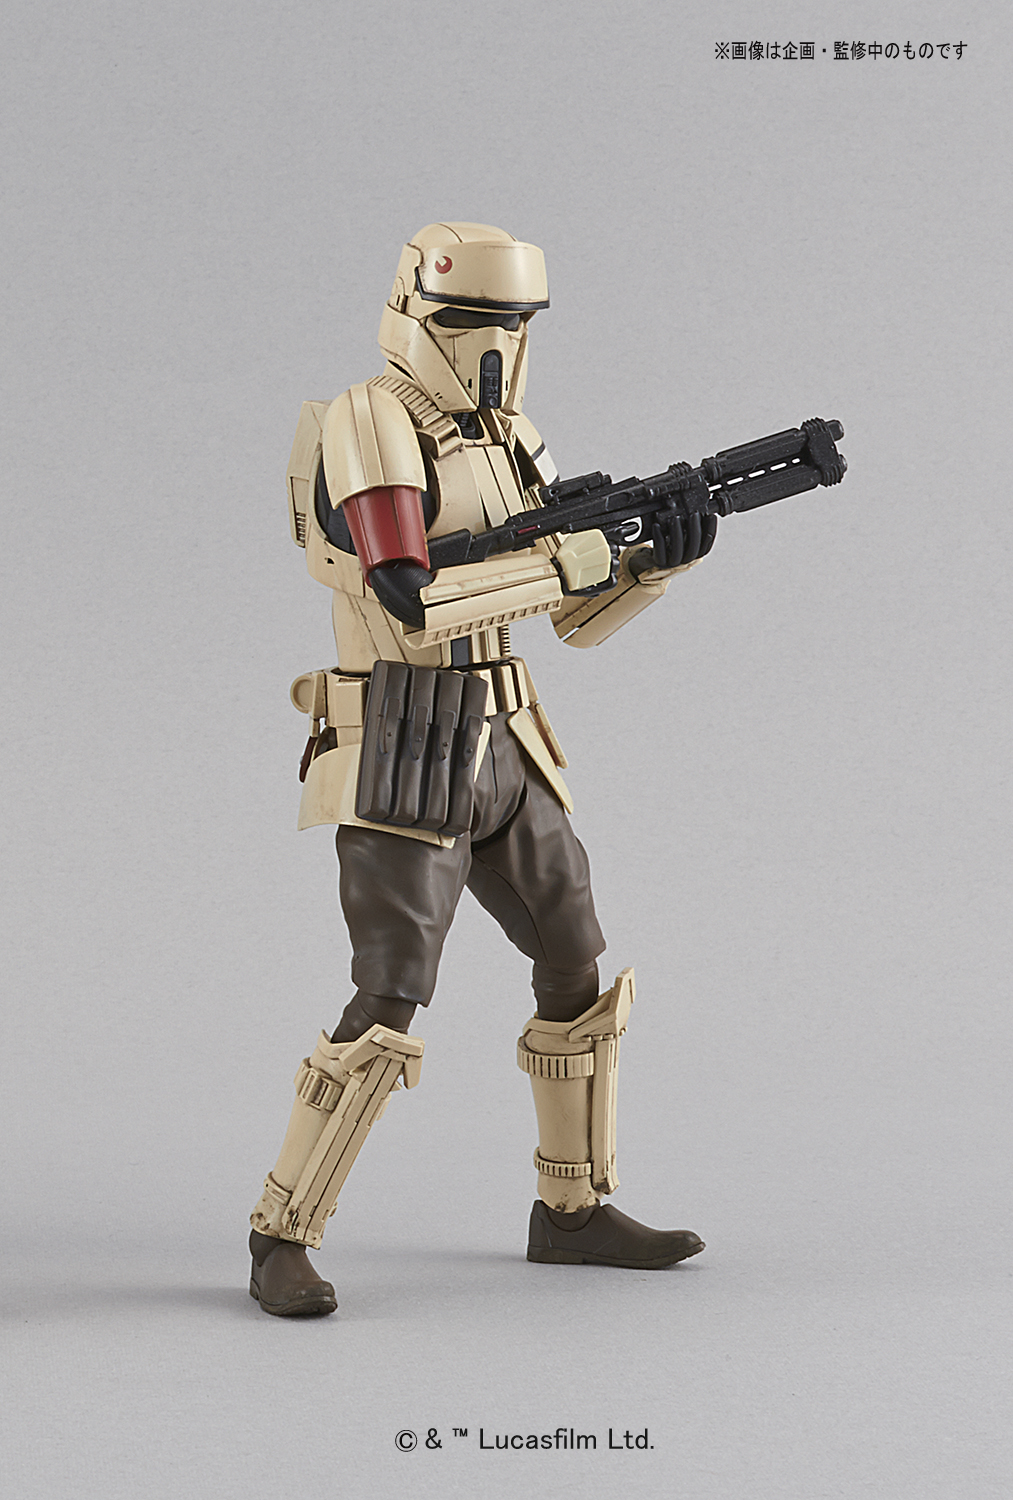 12_shore_trooper_03.jpg